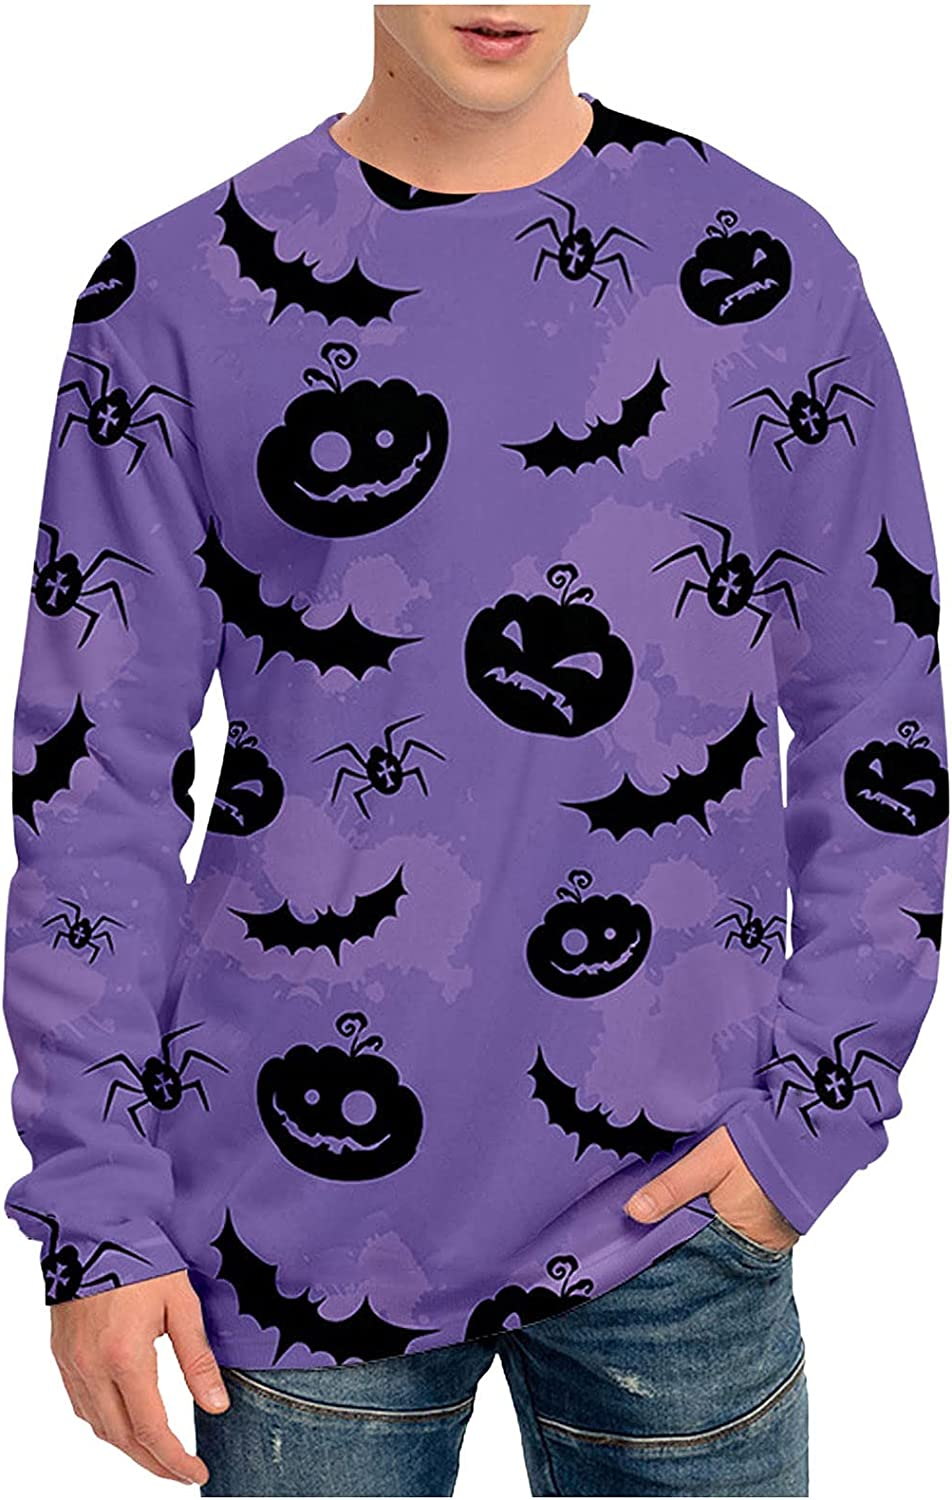 WOCACHI Halloween Long Sleeve T-Shirts for Mens, 3D Printed Pumpkin Bat Ghost Round Neck Shirts Casual Tee Tops